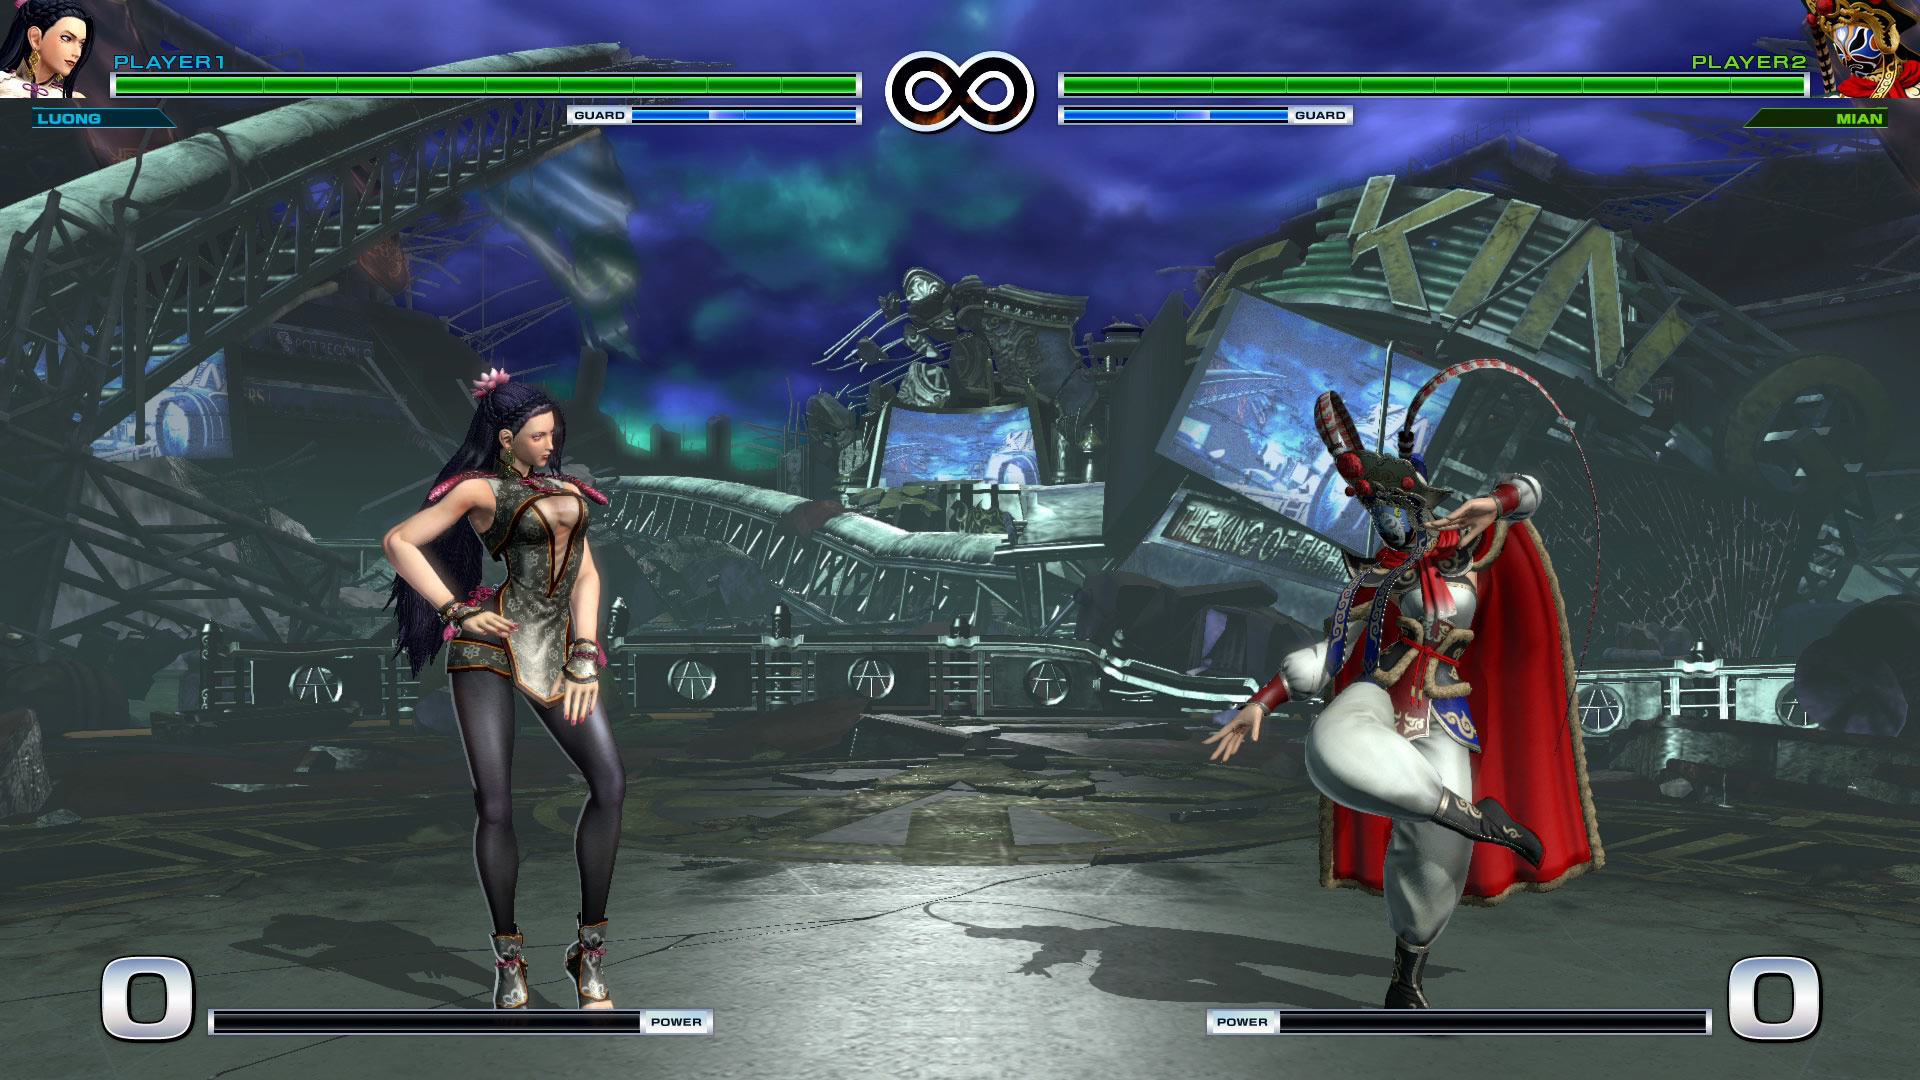 King of Fighters 14 1.10 graphics update 11 out of 60 image gallery